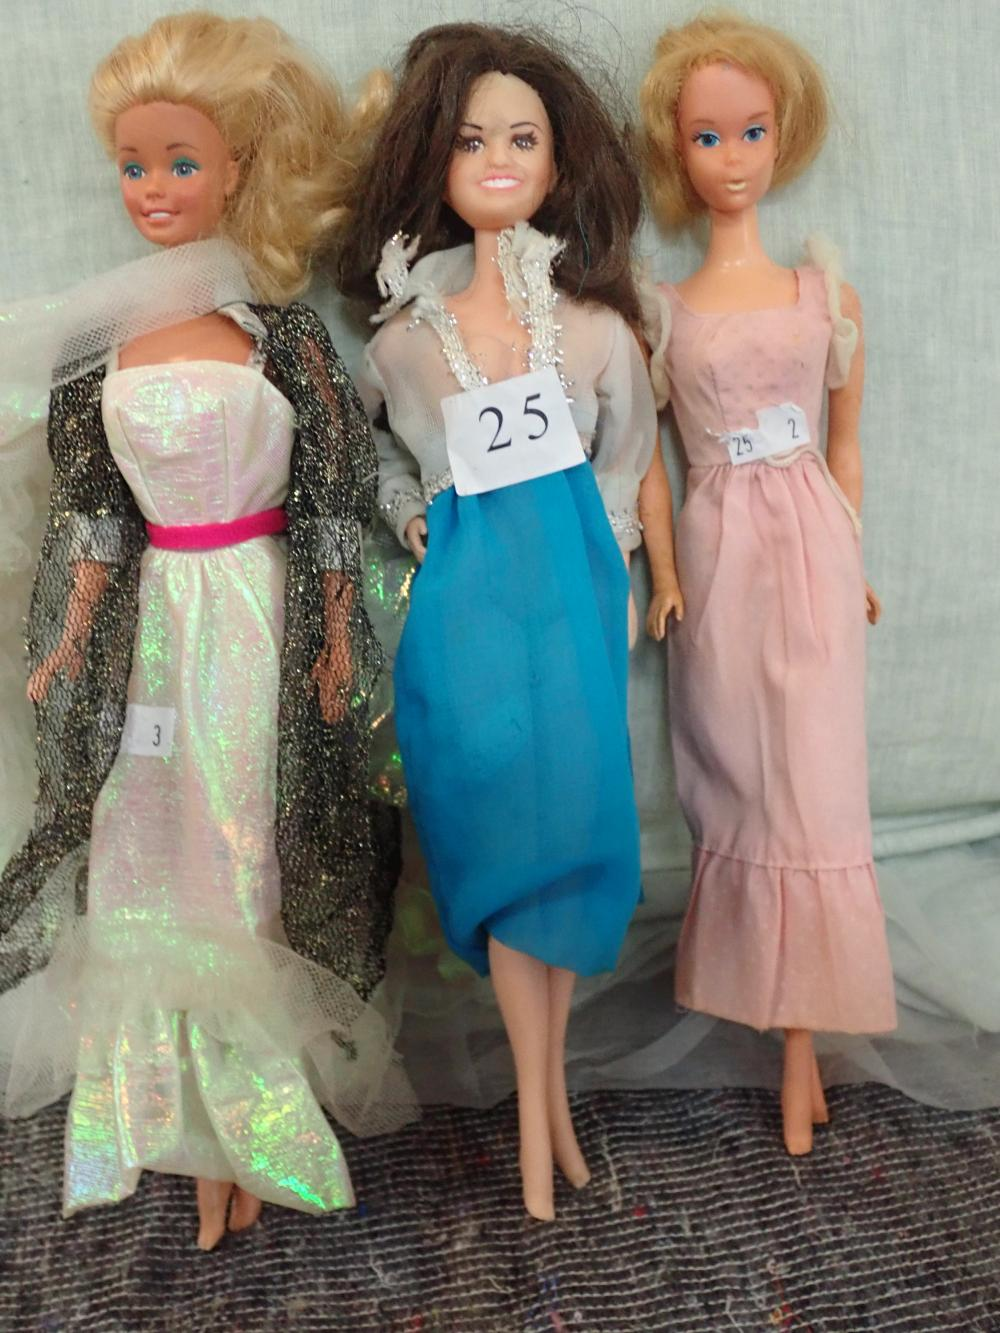 3 BARBIE DOLLS (1) MATTEL INC. 1966 KOREA 5 - HOLE UNDER FEET (2) MATTEL 1966 US & FOREIGN PATENTED OTHER PATS PENDING MADE IN KOREA - HOLE UNDER FEET (3) BARBIE MATTEL INC 1966 MADE IN PHILIPPINES